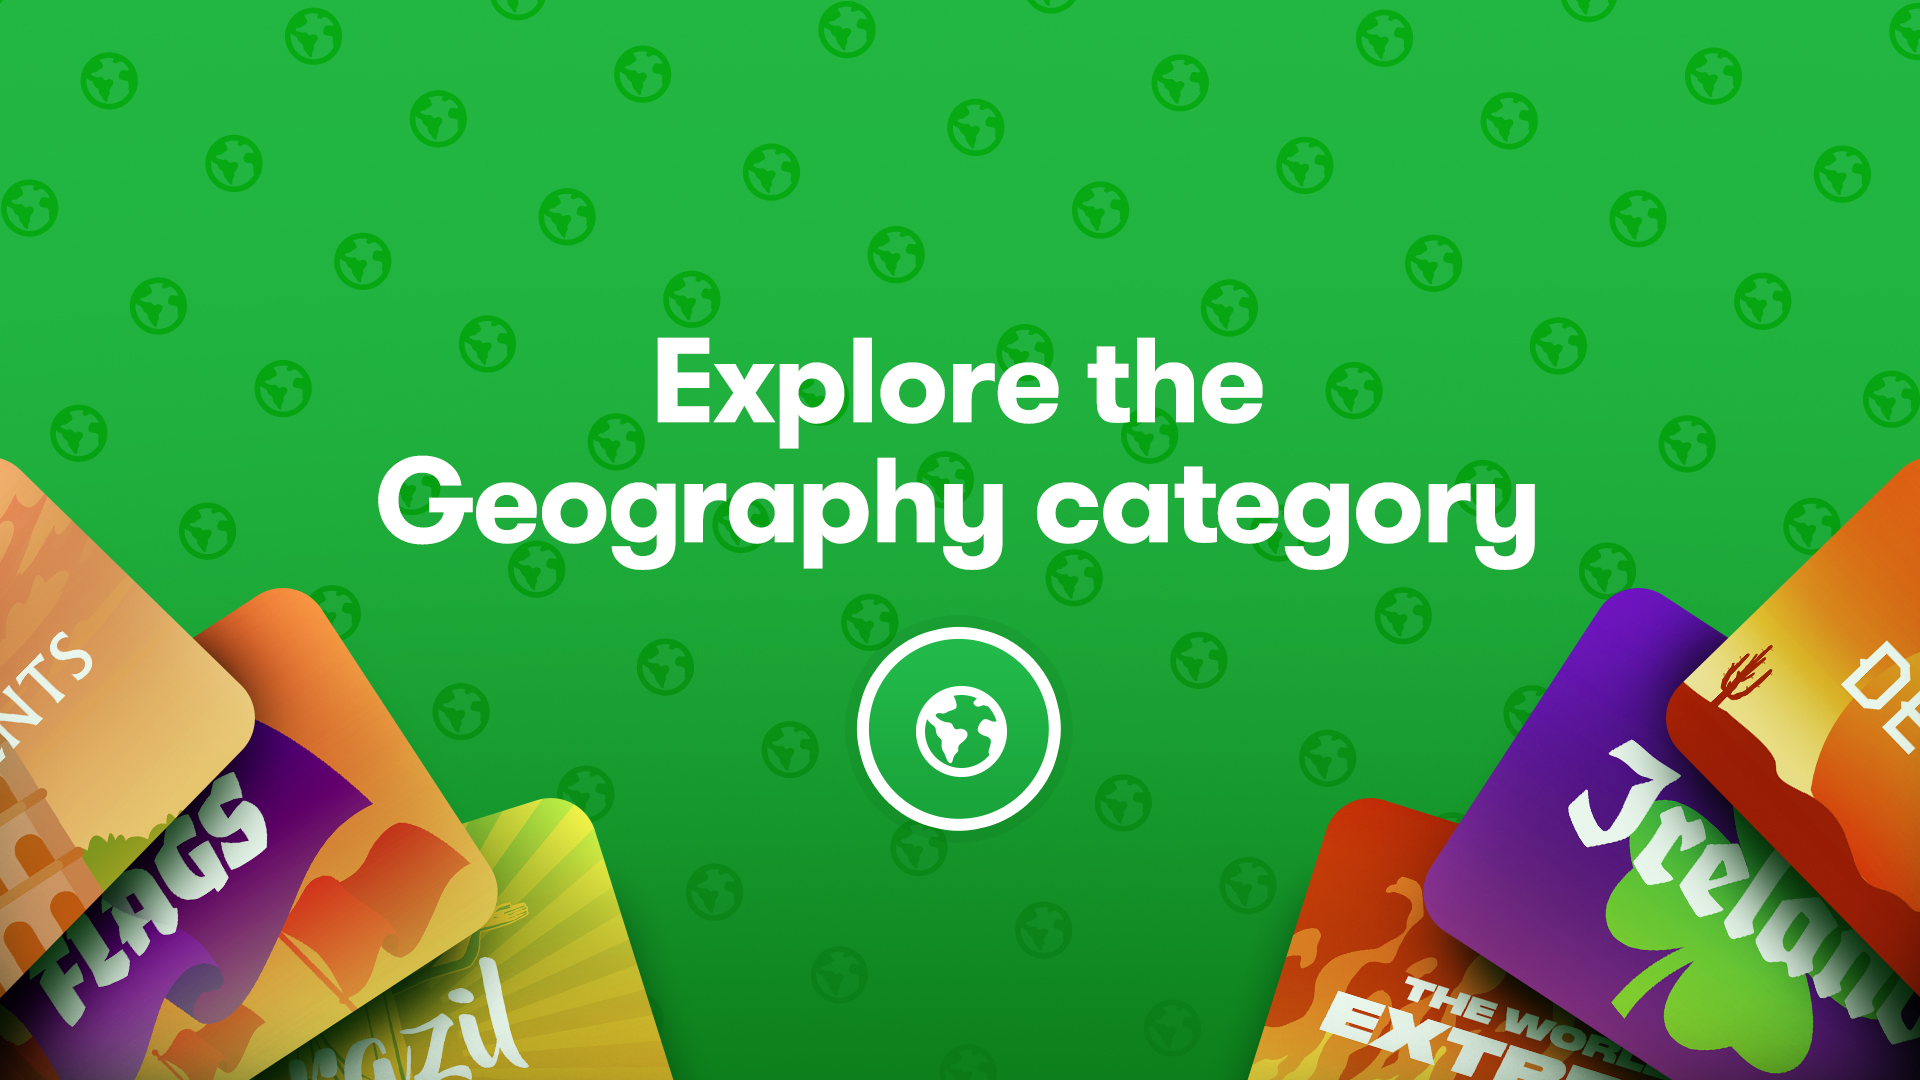 Explore the Geography category